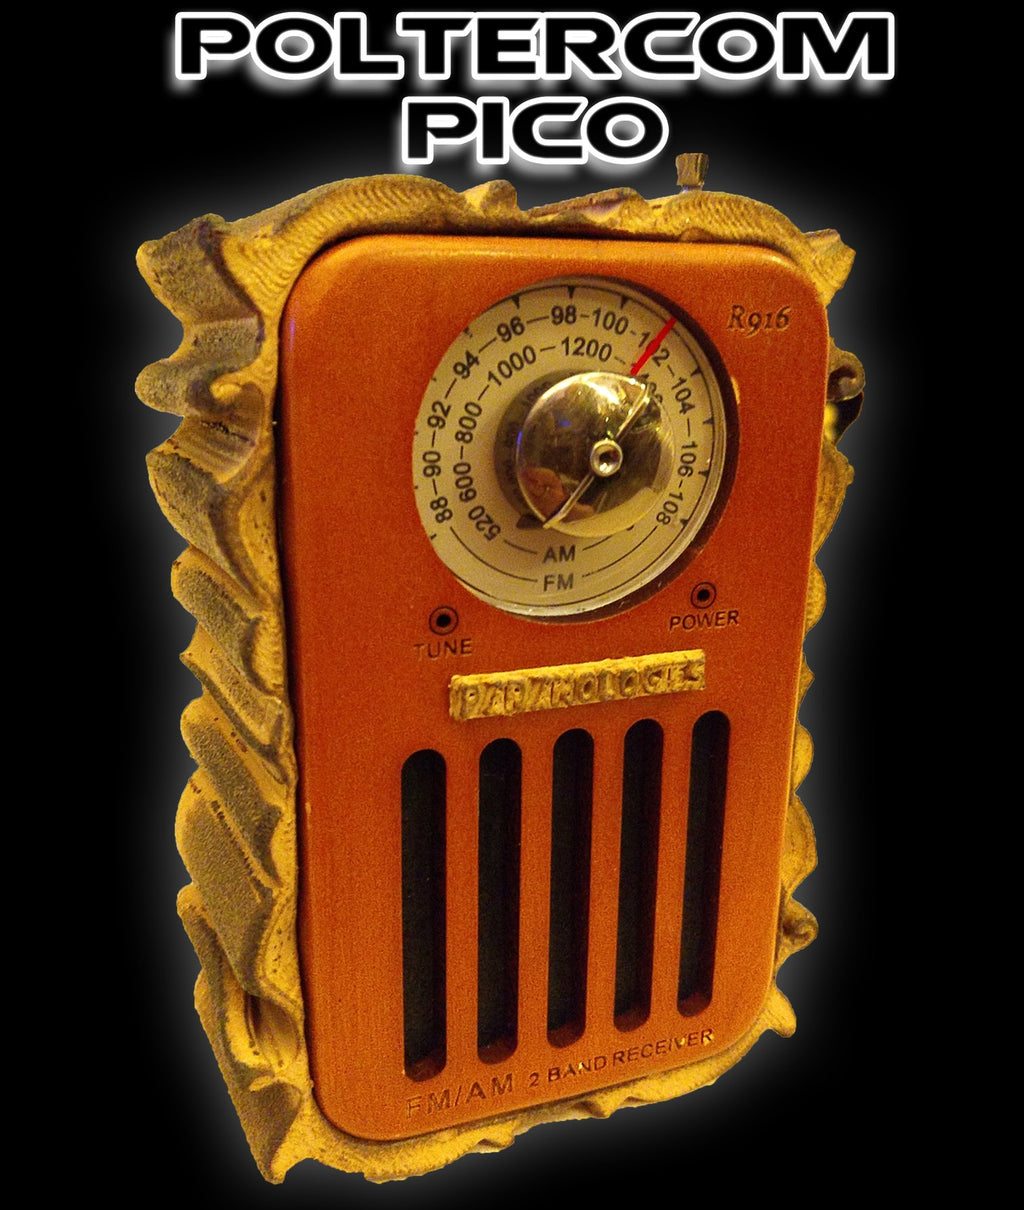 Poltercom Pico - Handheld Random Sweep Ghost/Spirit Box